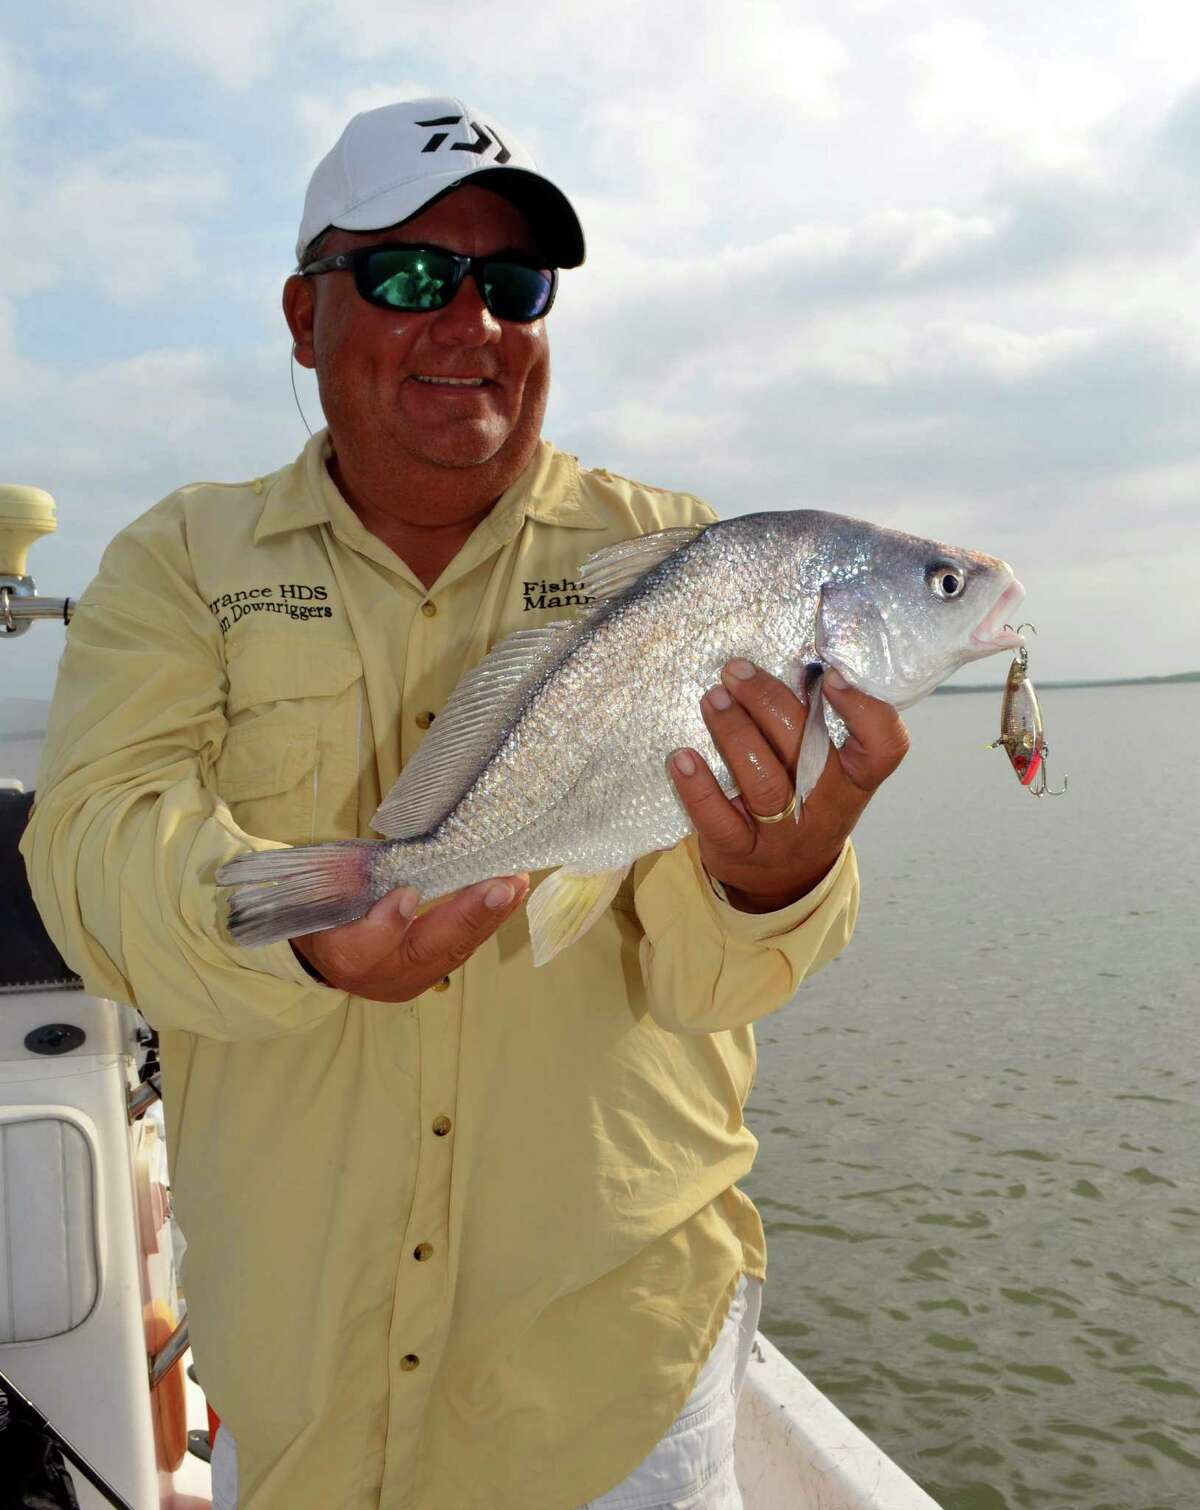 Catching a nice two-pound gaspergou during an angling adventure for largemouth and white bass at Choke Canyon Reservoir is considered a bonus by Guide Manny Martinez as he takes advantage of a mixed bag of fishing fun on the lake.